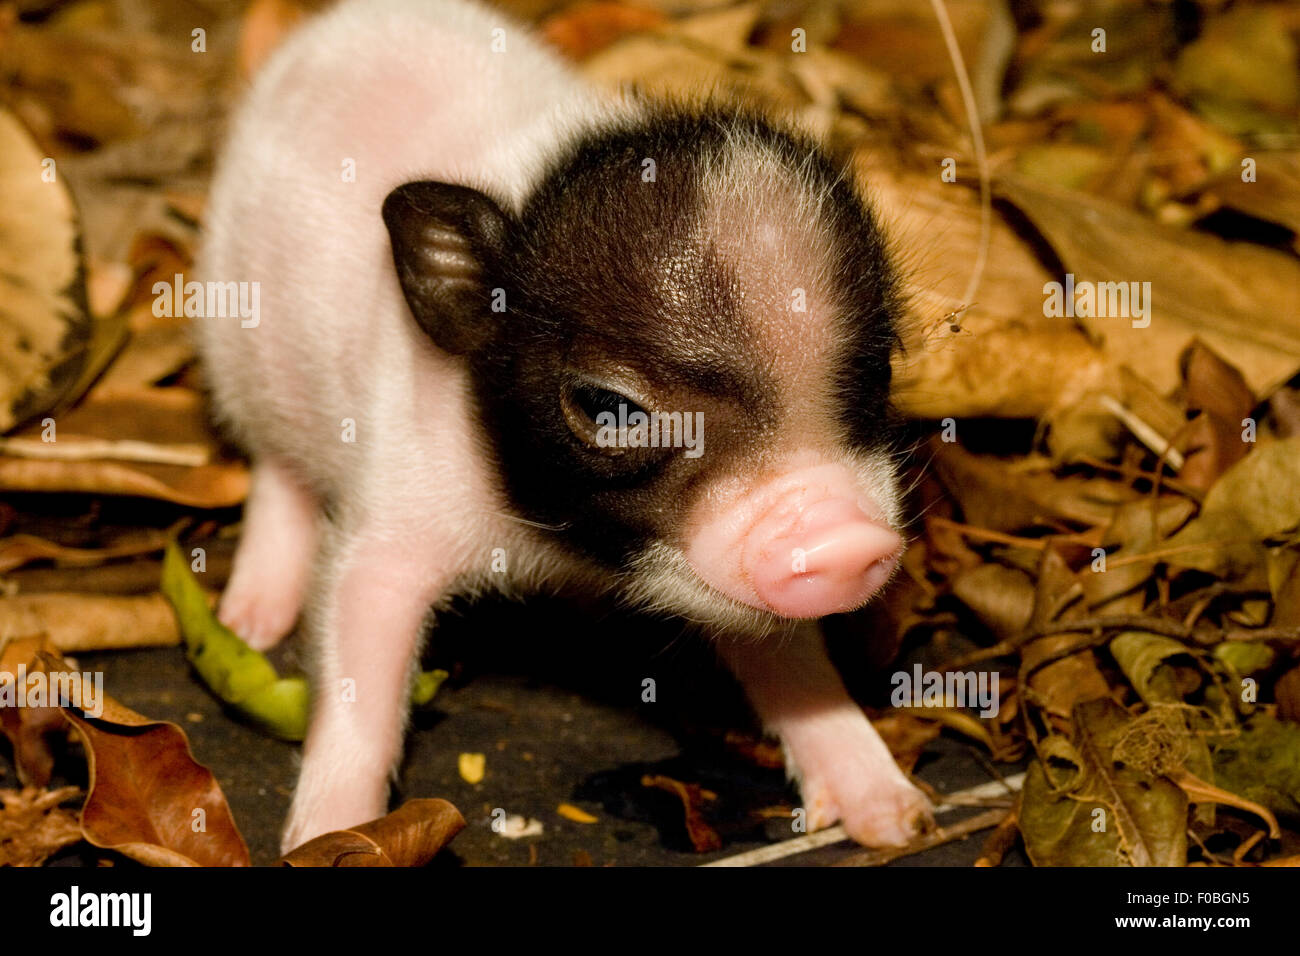 a cute baby pig on a farm stock photo royalty free image